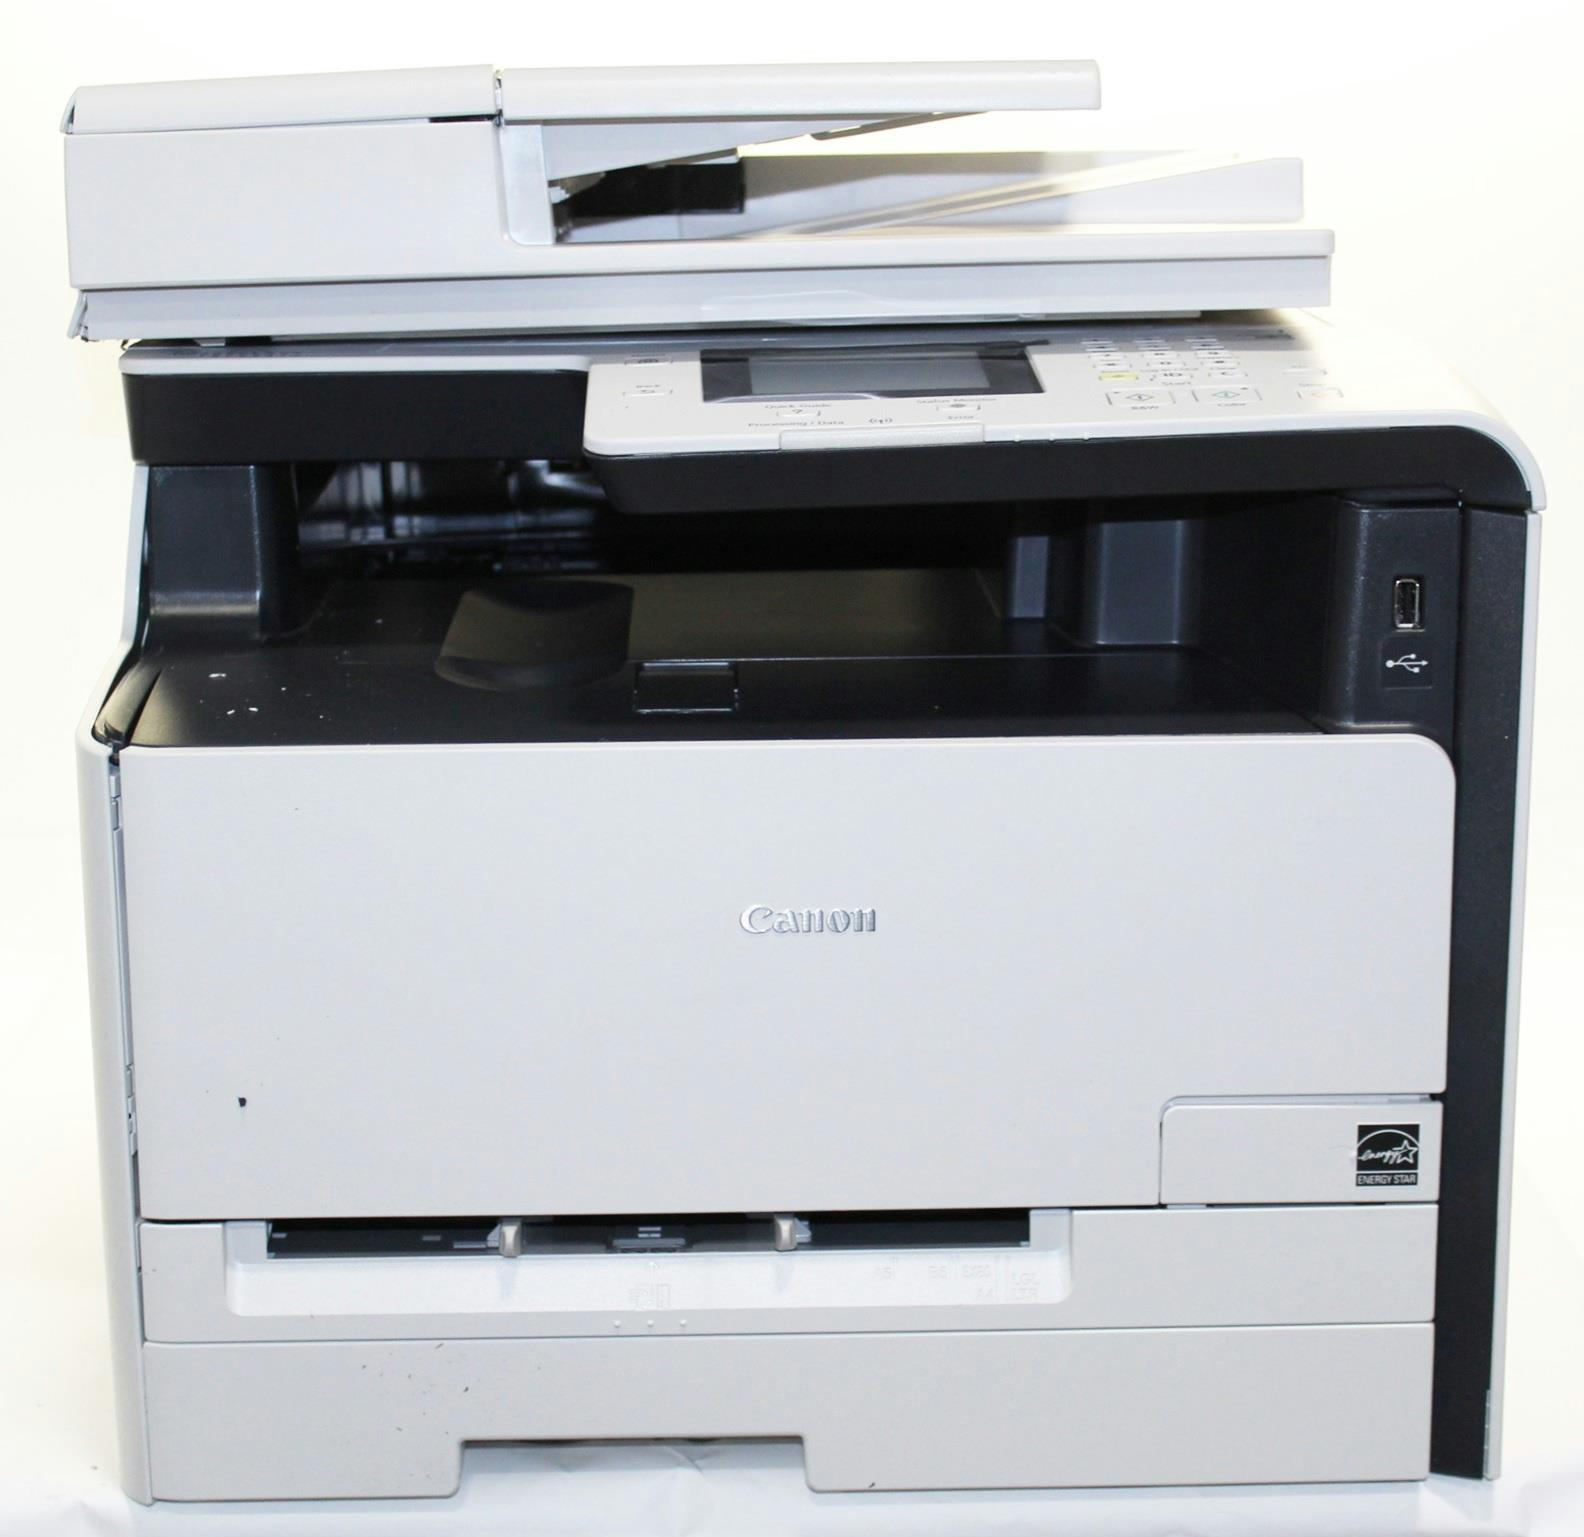 Details about Canon MF46Cw Color MF Printer/Scanner/Copier/Fax 46B46  *For Parts* 46